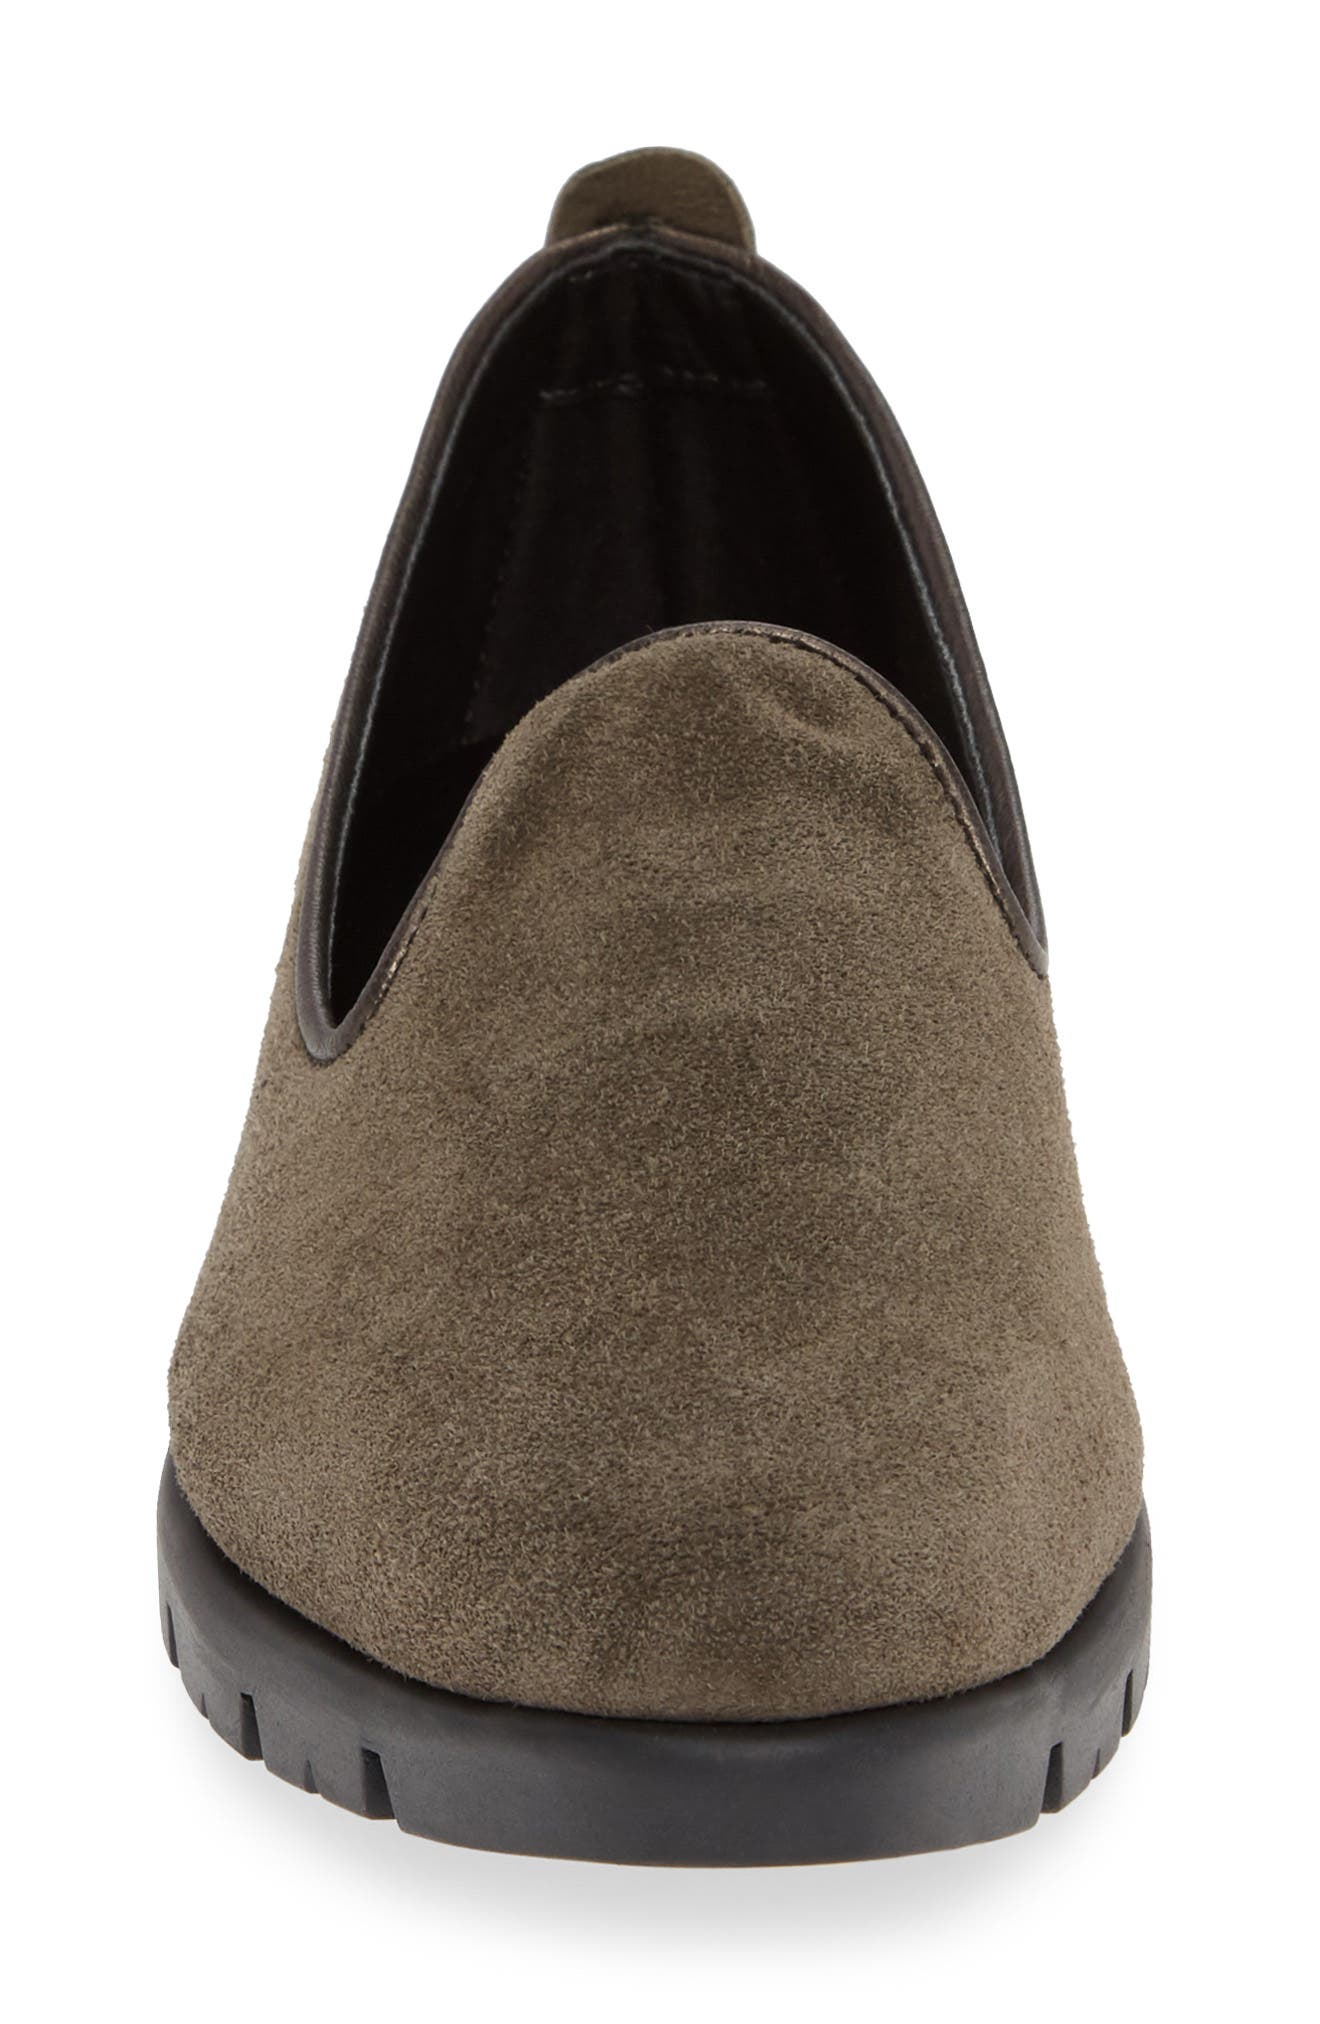 THE FLEXX, Smokin' Hot Plush Loafer, Alternate thumbnail 4, color, BROWN SUEDE